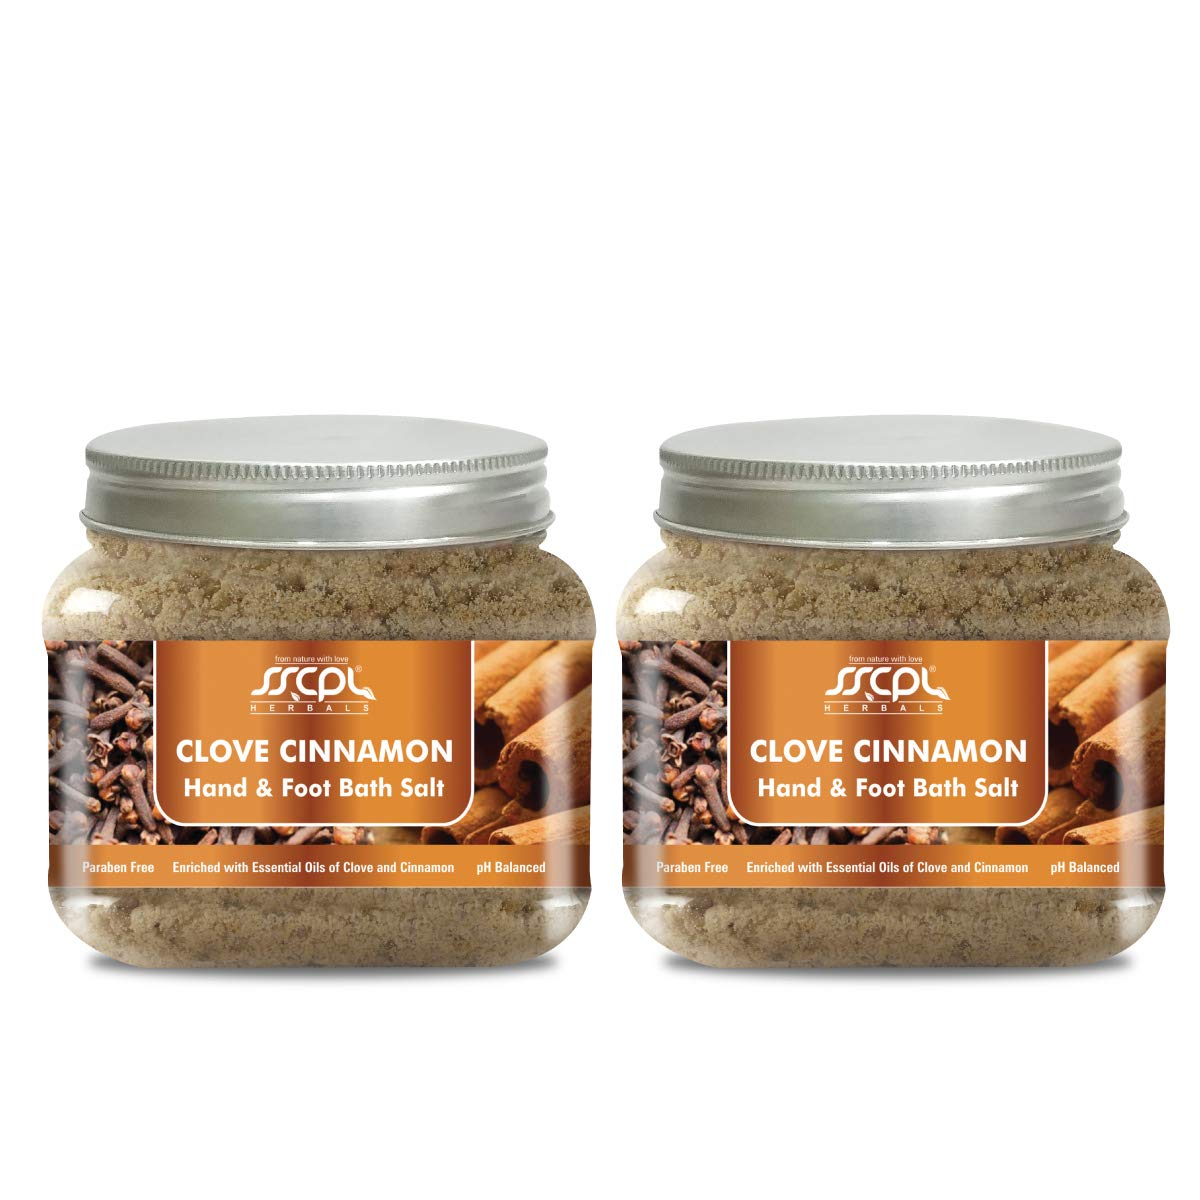 Use Clove Cinnamon Bath Salt for Healthy and Youthful Hands and Feet